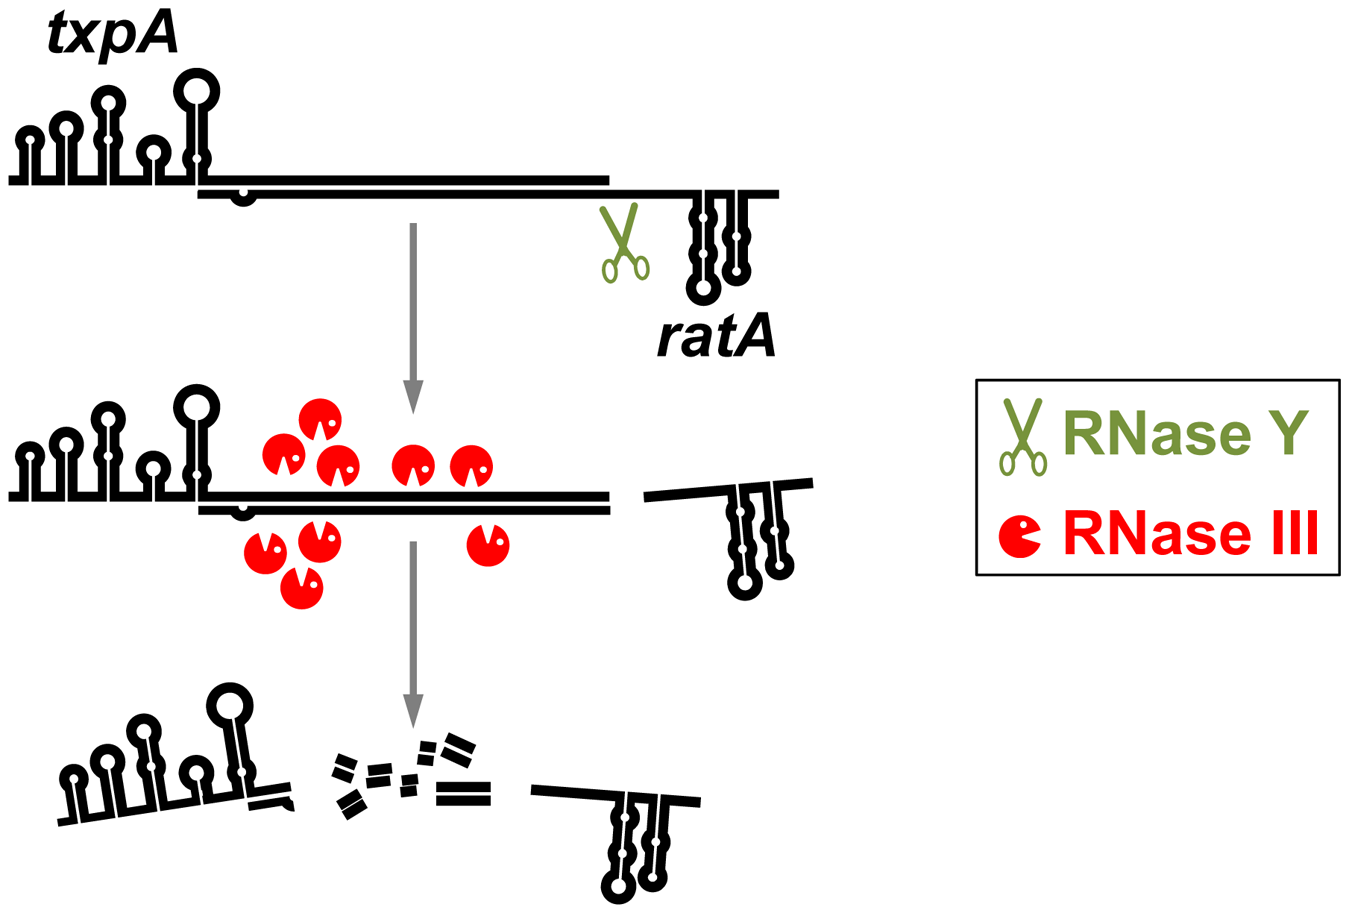 Degradation of a phage-encoded toxin mRNA in <i>B. subtilis</i>.